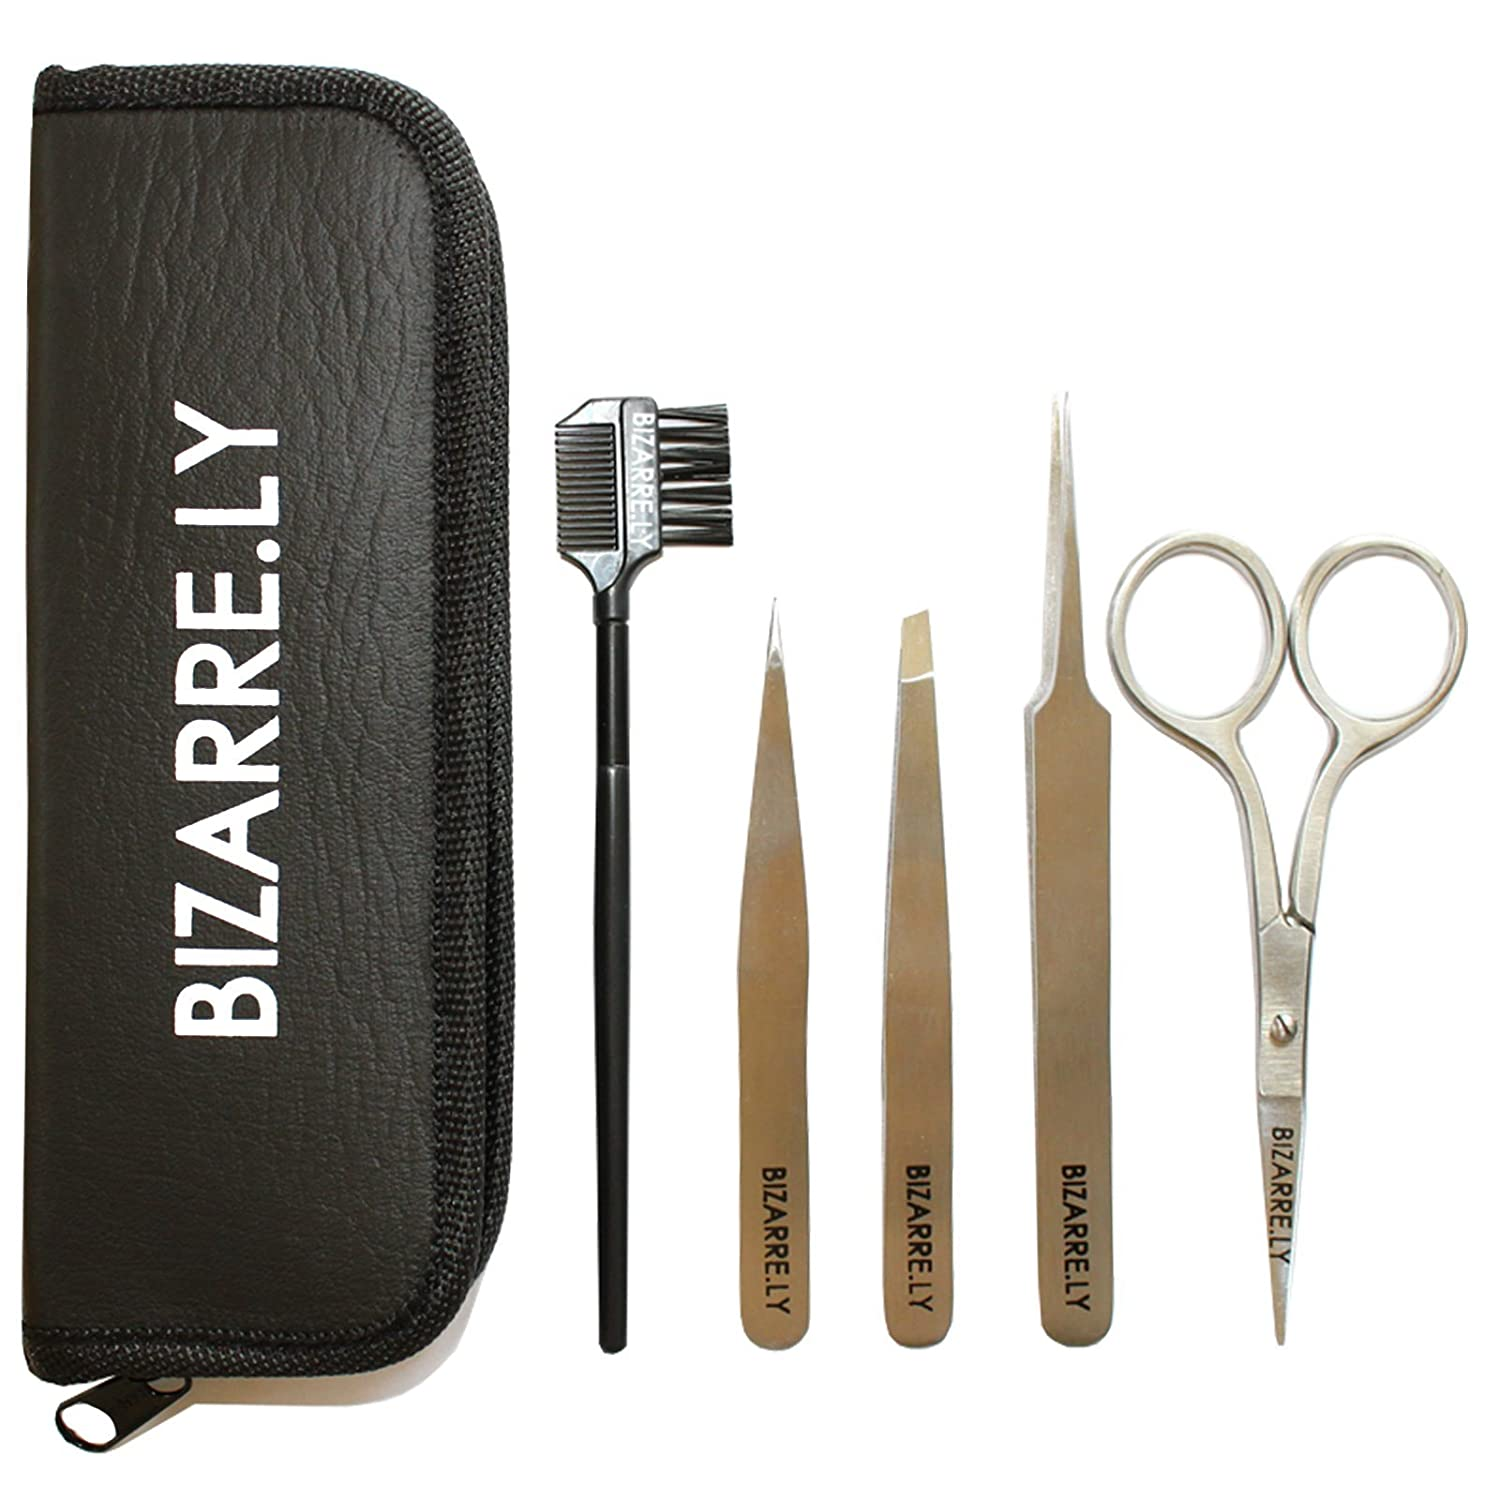 5 Piece Stainless Steel Eyebrow Grooming Kit with Case by Bizarre.ly - Professional Tweezers, Scissors and Brush Kit - For Shaping, Trimming and False Eyelash Extensions/Application